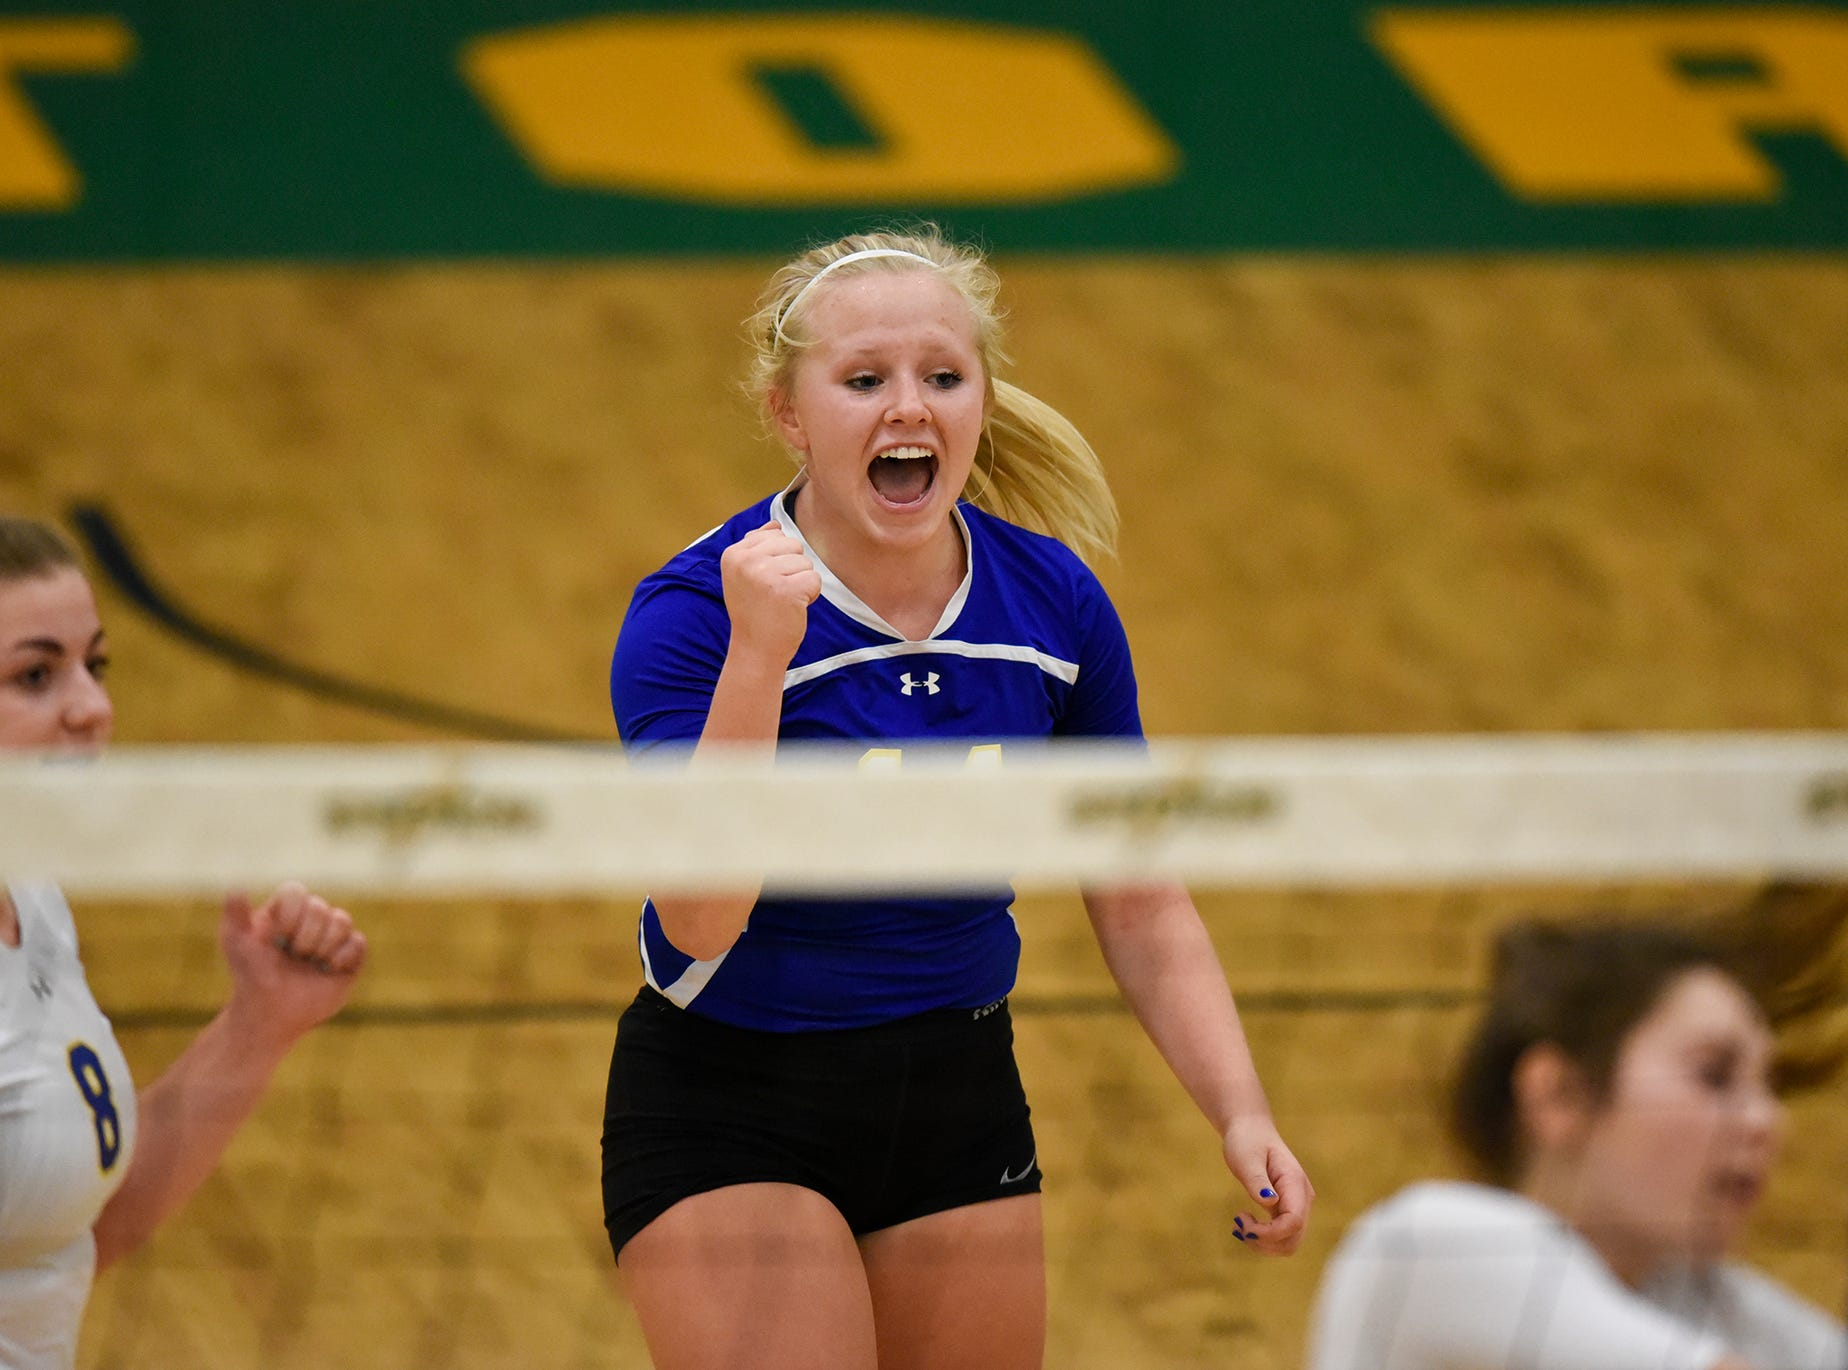 Cathedral's Liz Hamak celebrates a point for her team during the Section 6-2A volleyball semifinals Thursday, Nov. 1, at Sauk Rapids-Rice High School.